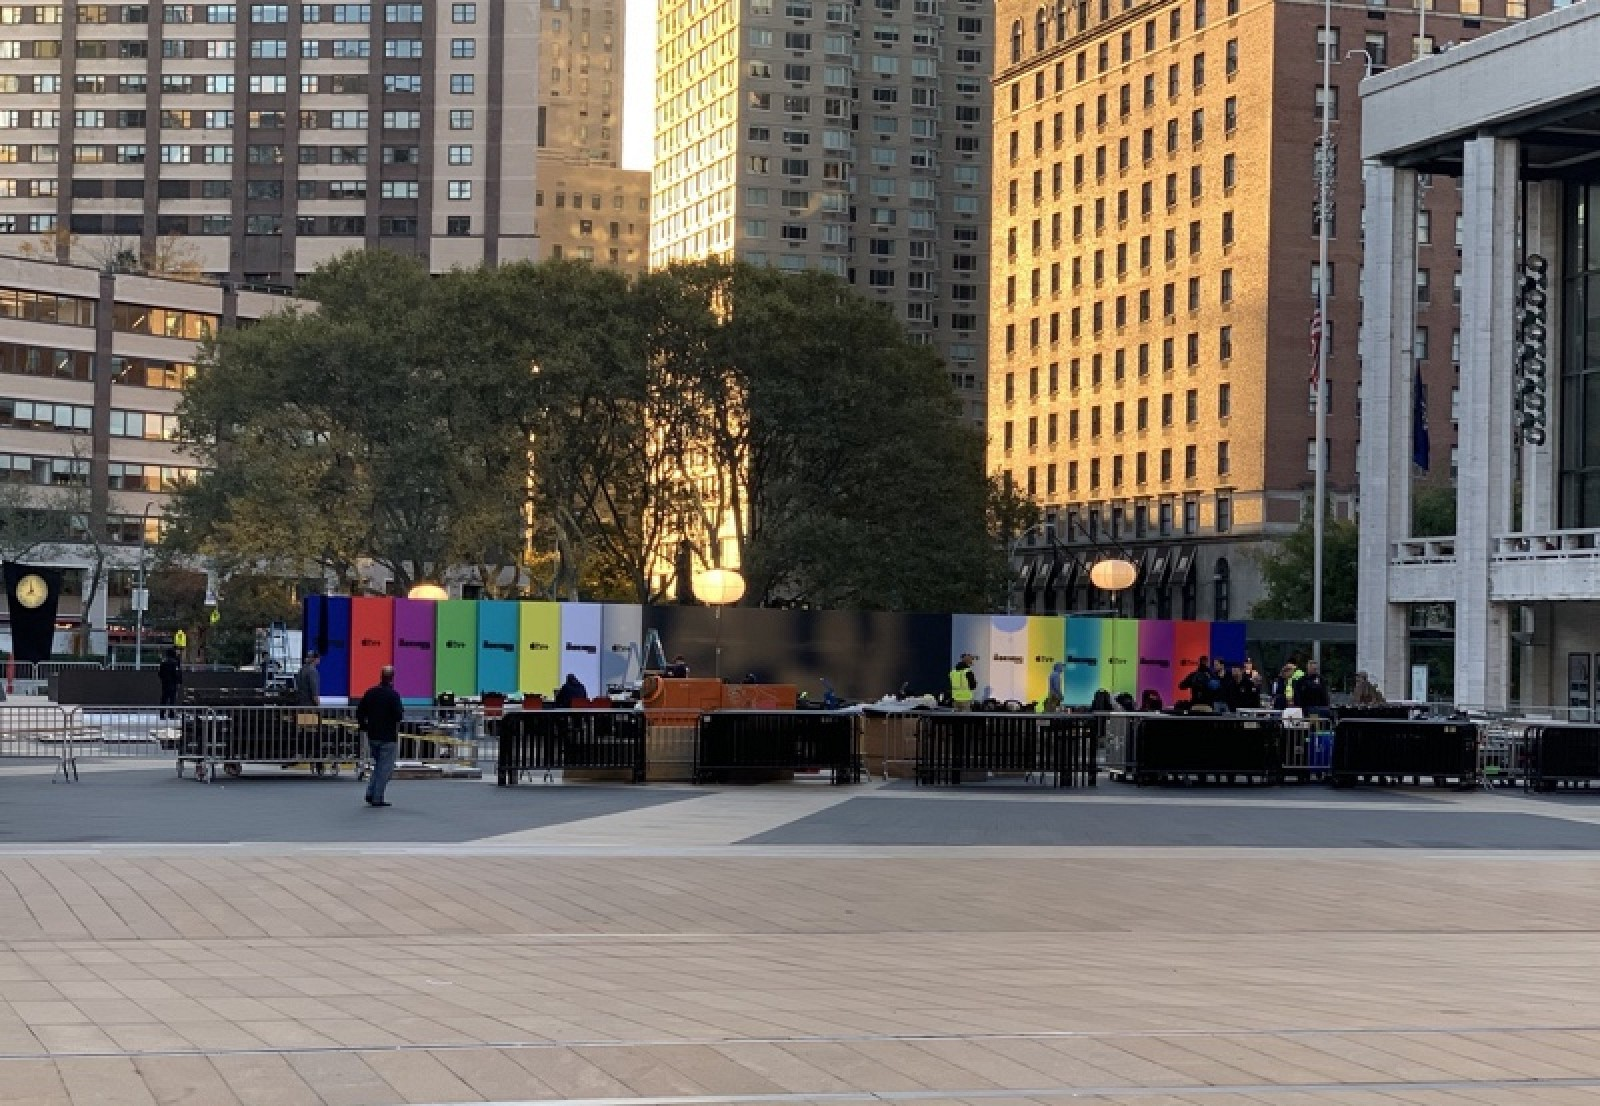 Apple Hosting Apple TV+ Event for 'The Morning Show' in New York City